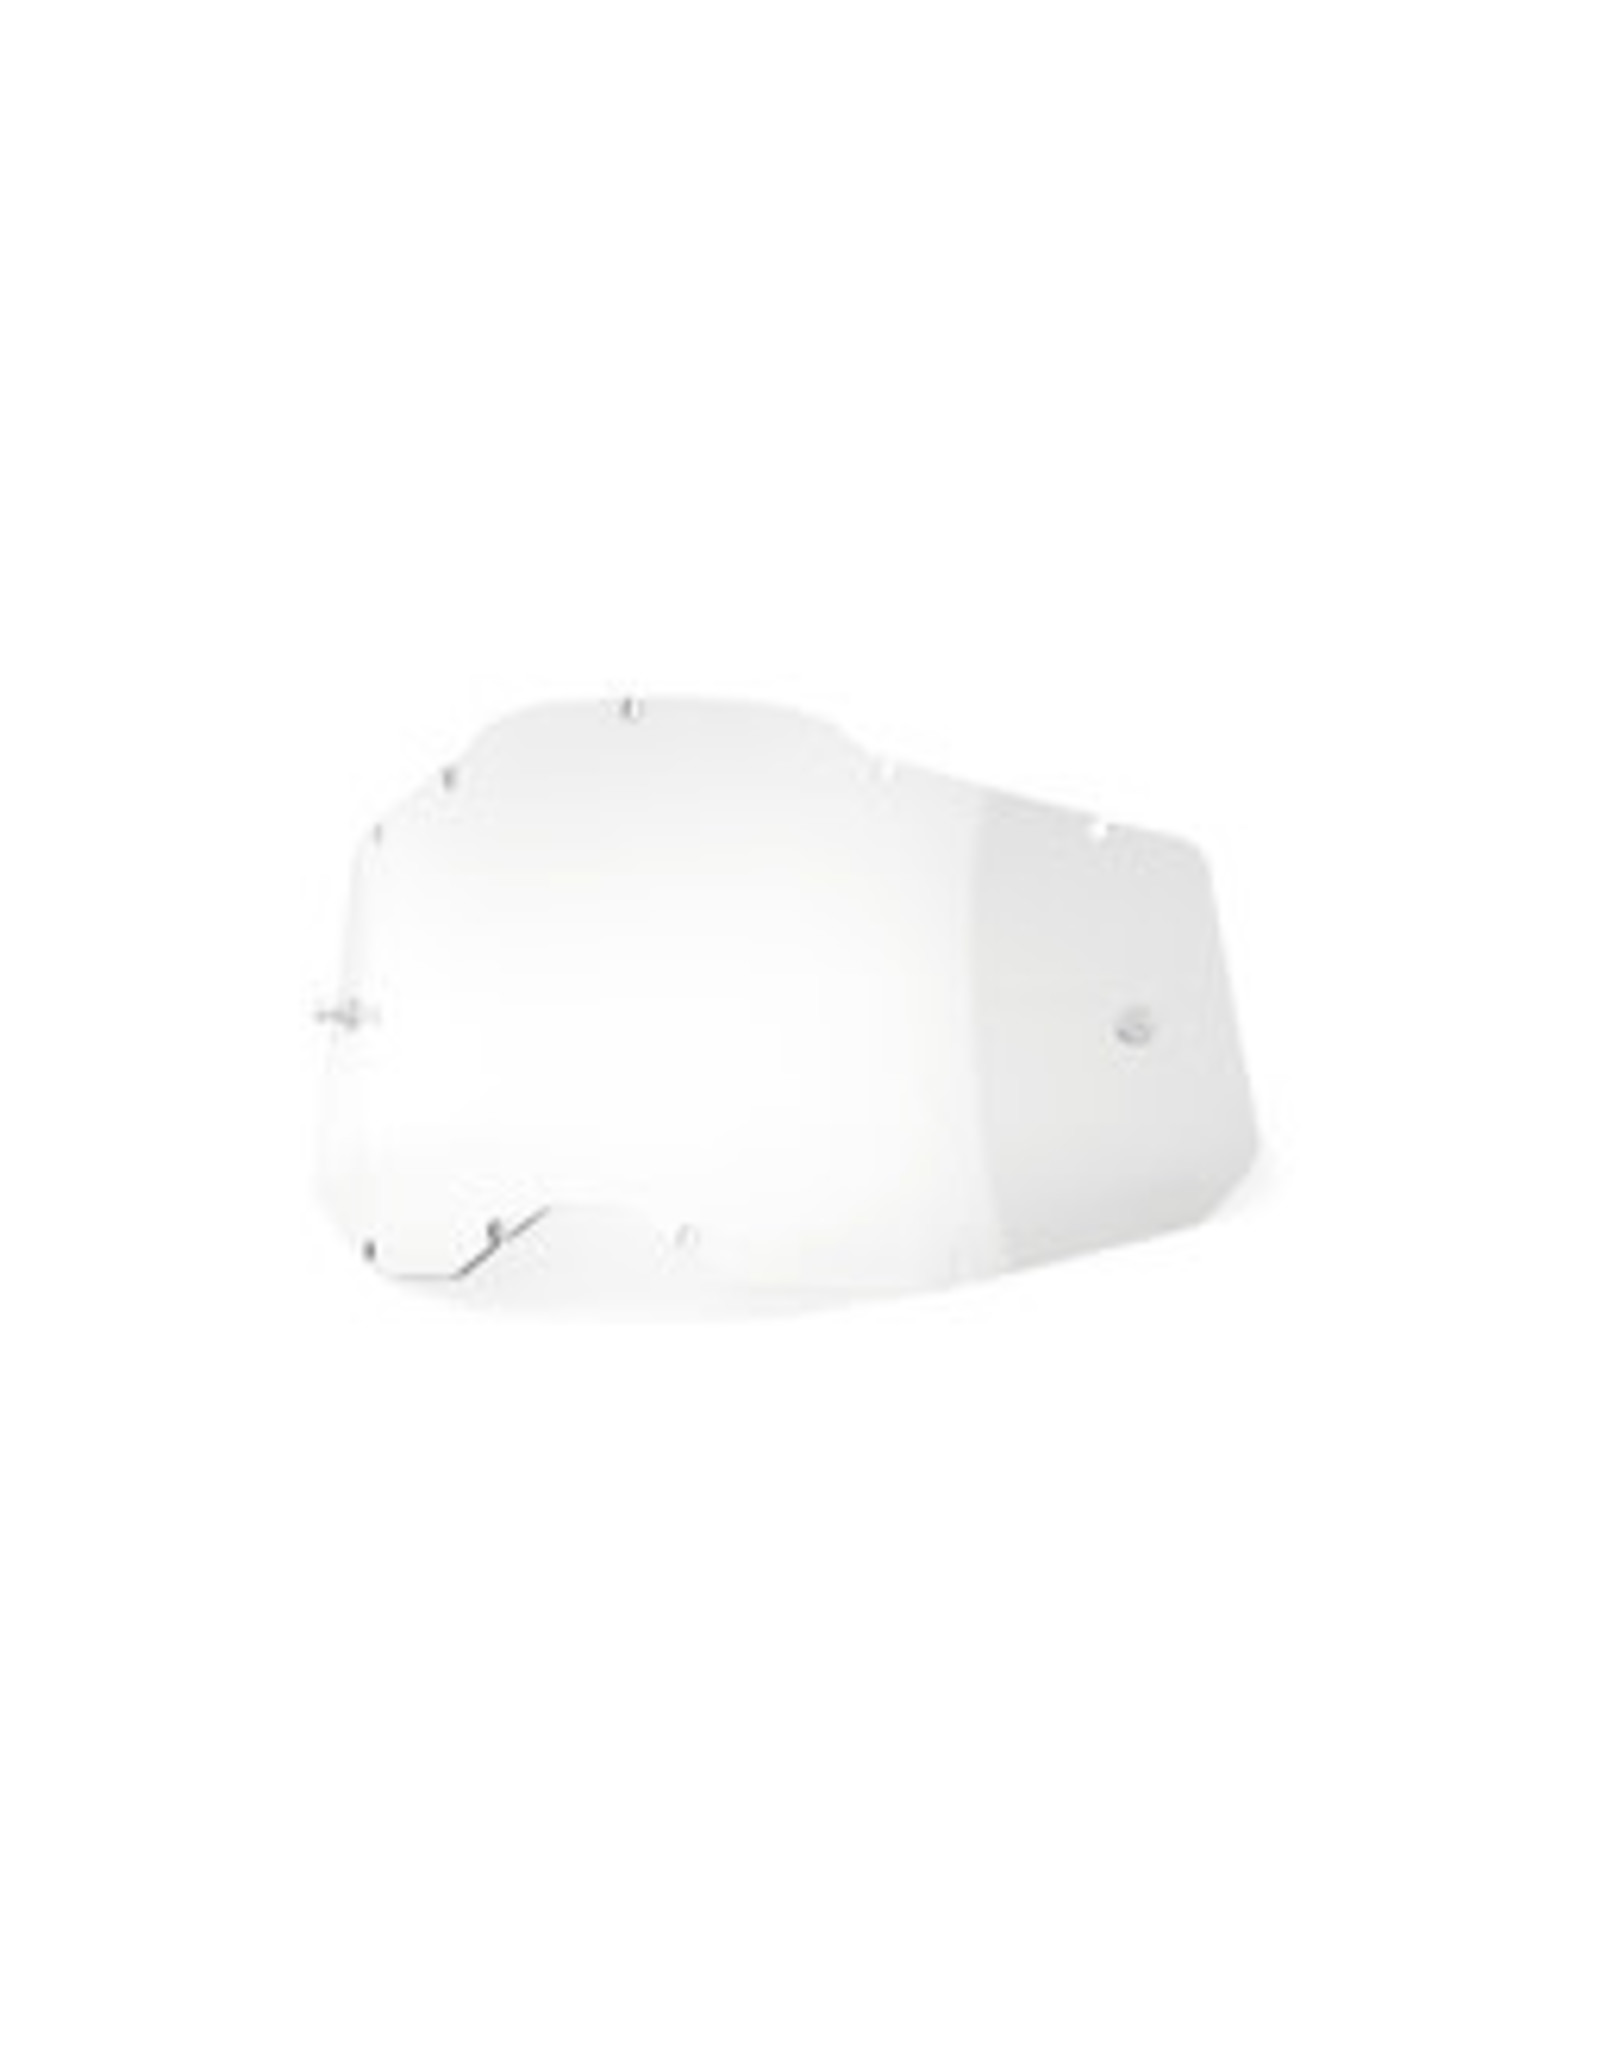 100% 100% RACECRAFT/ACCURI GOGGLES CLEAR REPLACEMENT LENS